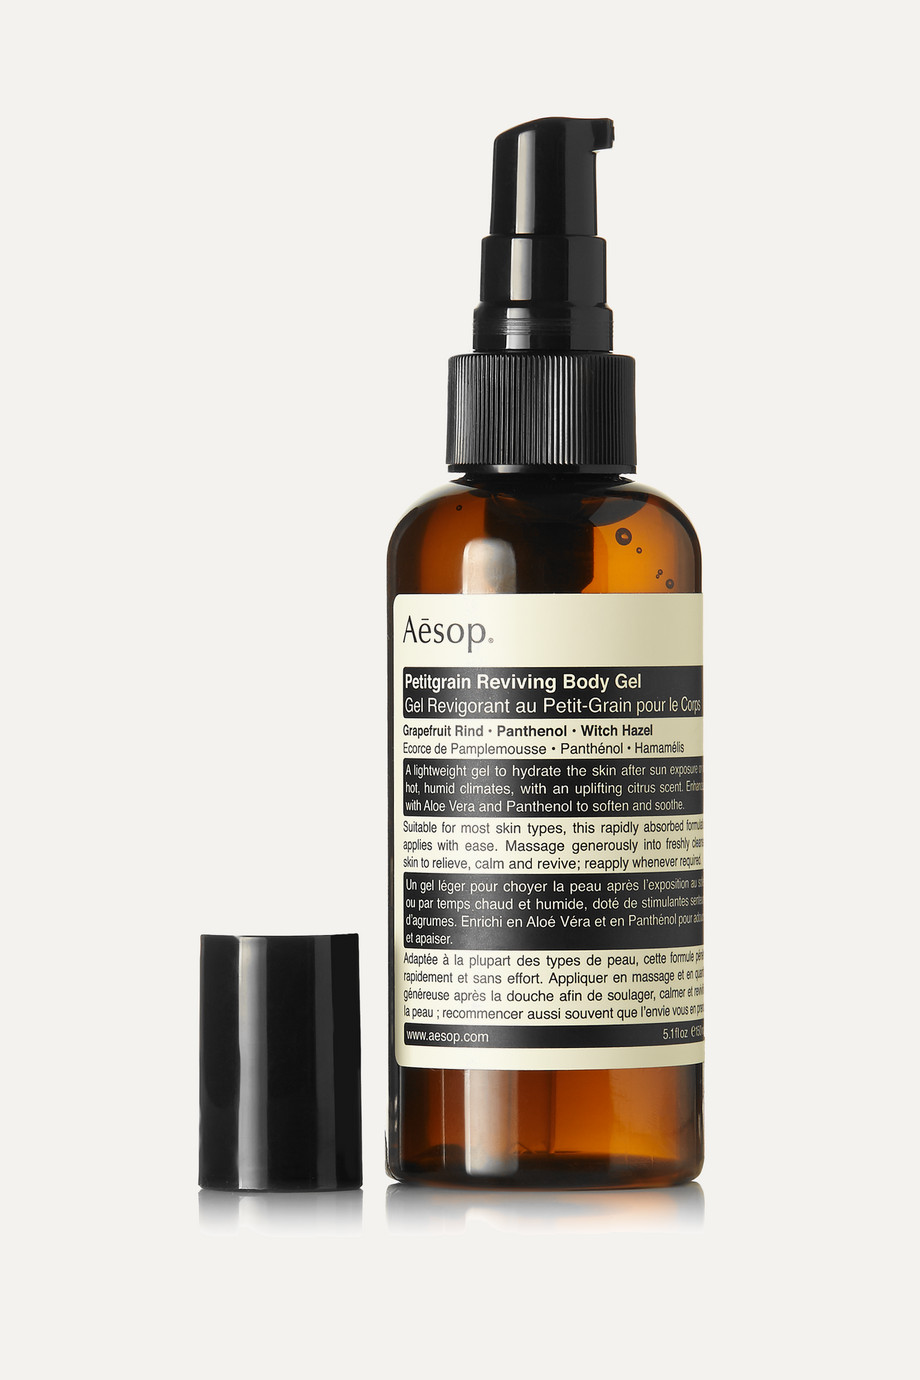 Aesop Petitgrain Reviving Body Gel, 150ml